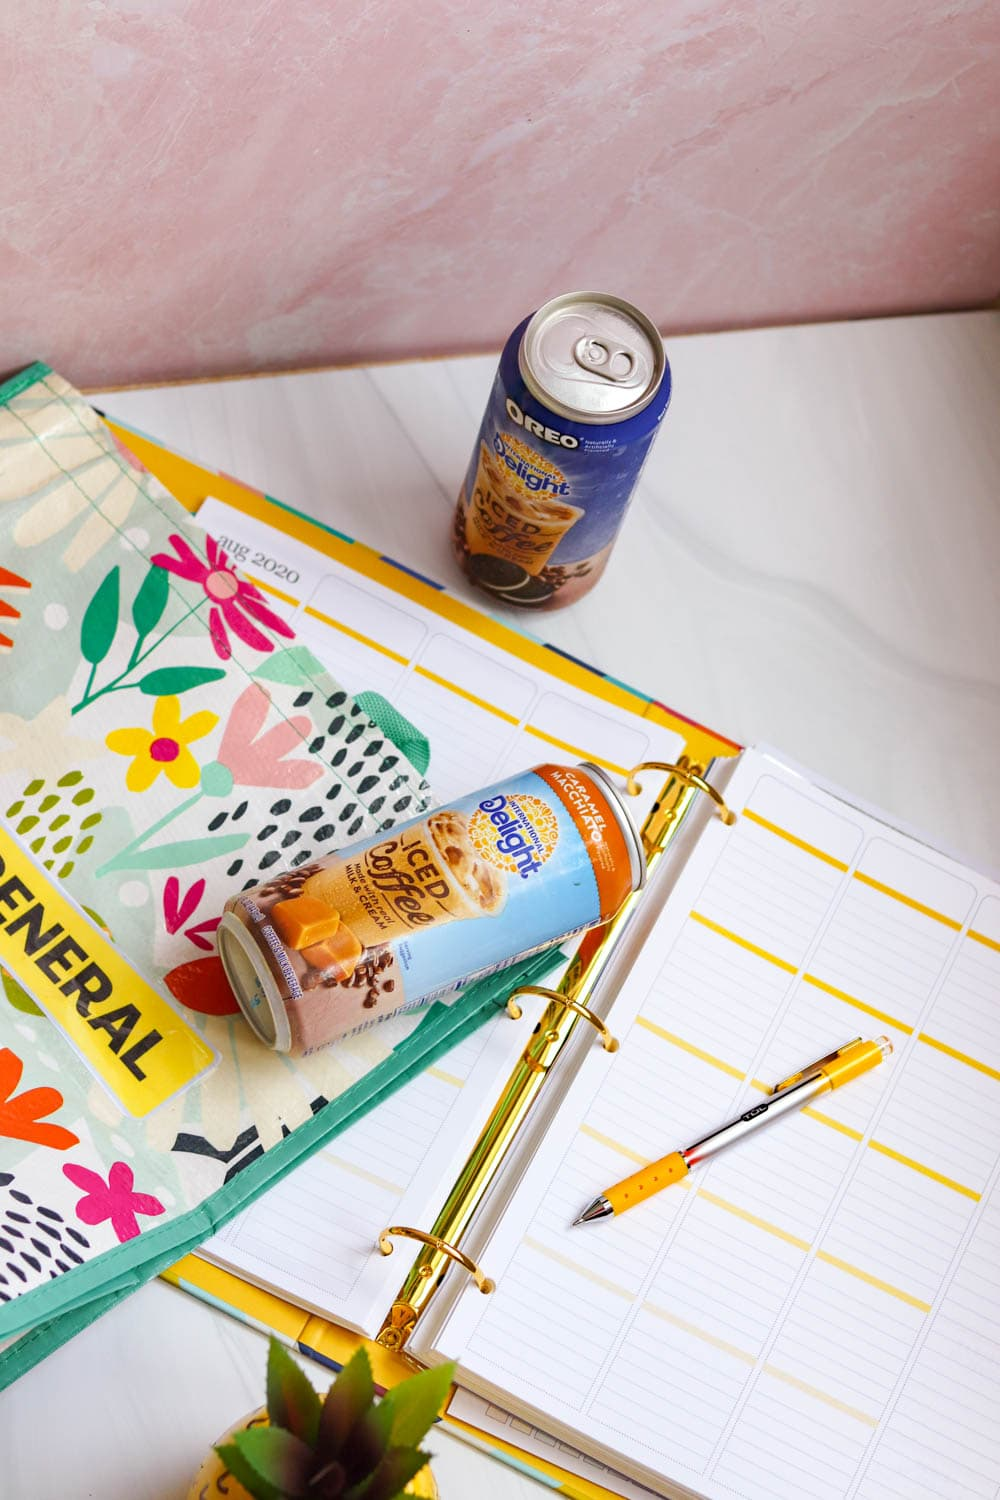 Project Planner Printables: Iced Coffee and Plan!